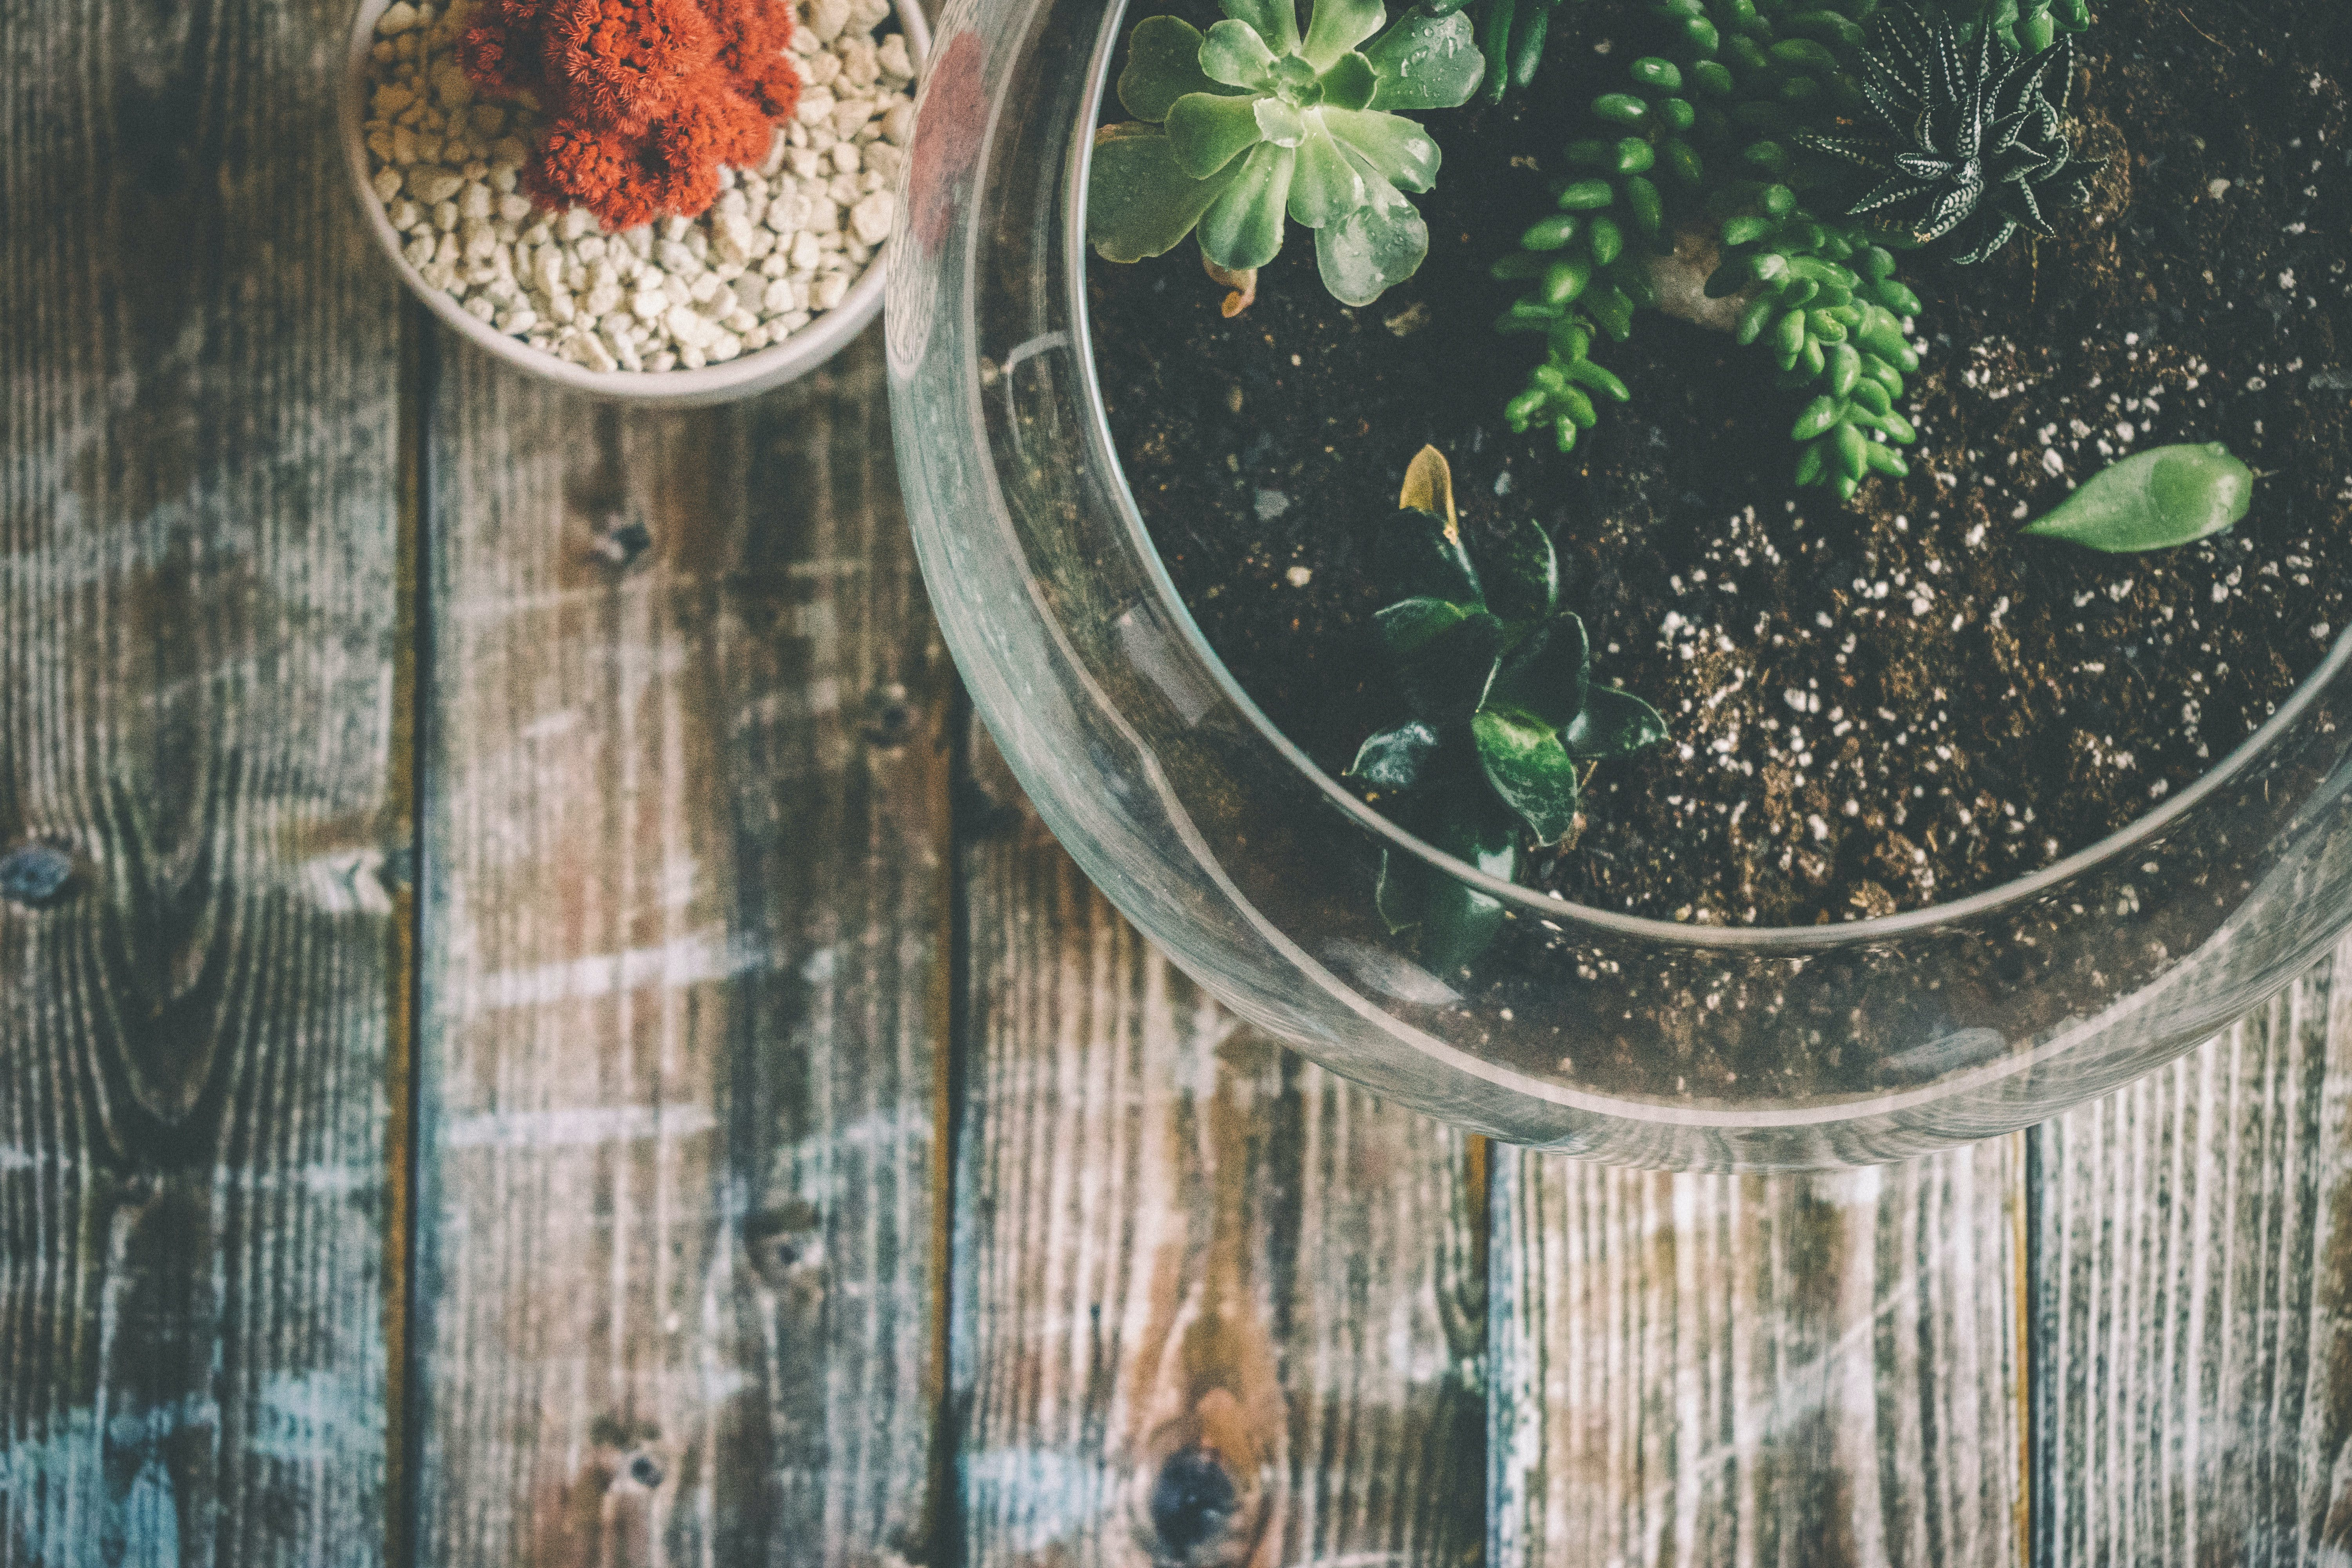 Aerial Photography of Green Potted Plant